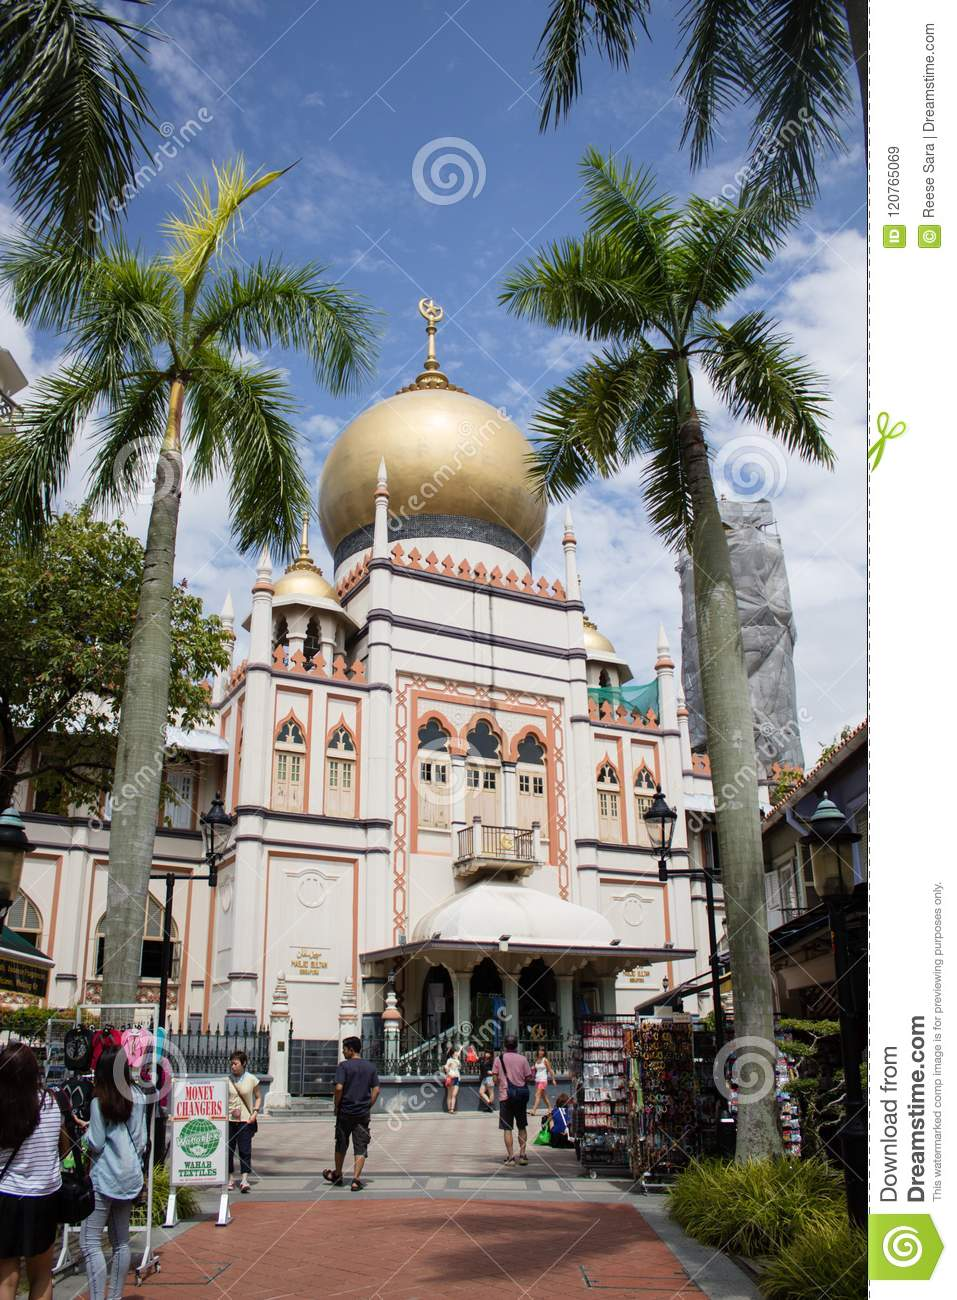 Singapore - 30 Jan 2015: Tourists are walking around Sultan Mosque, a famous mosque in Singapore